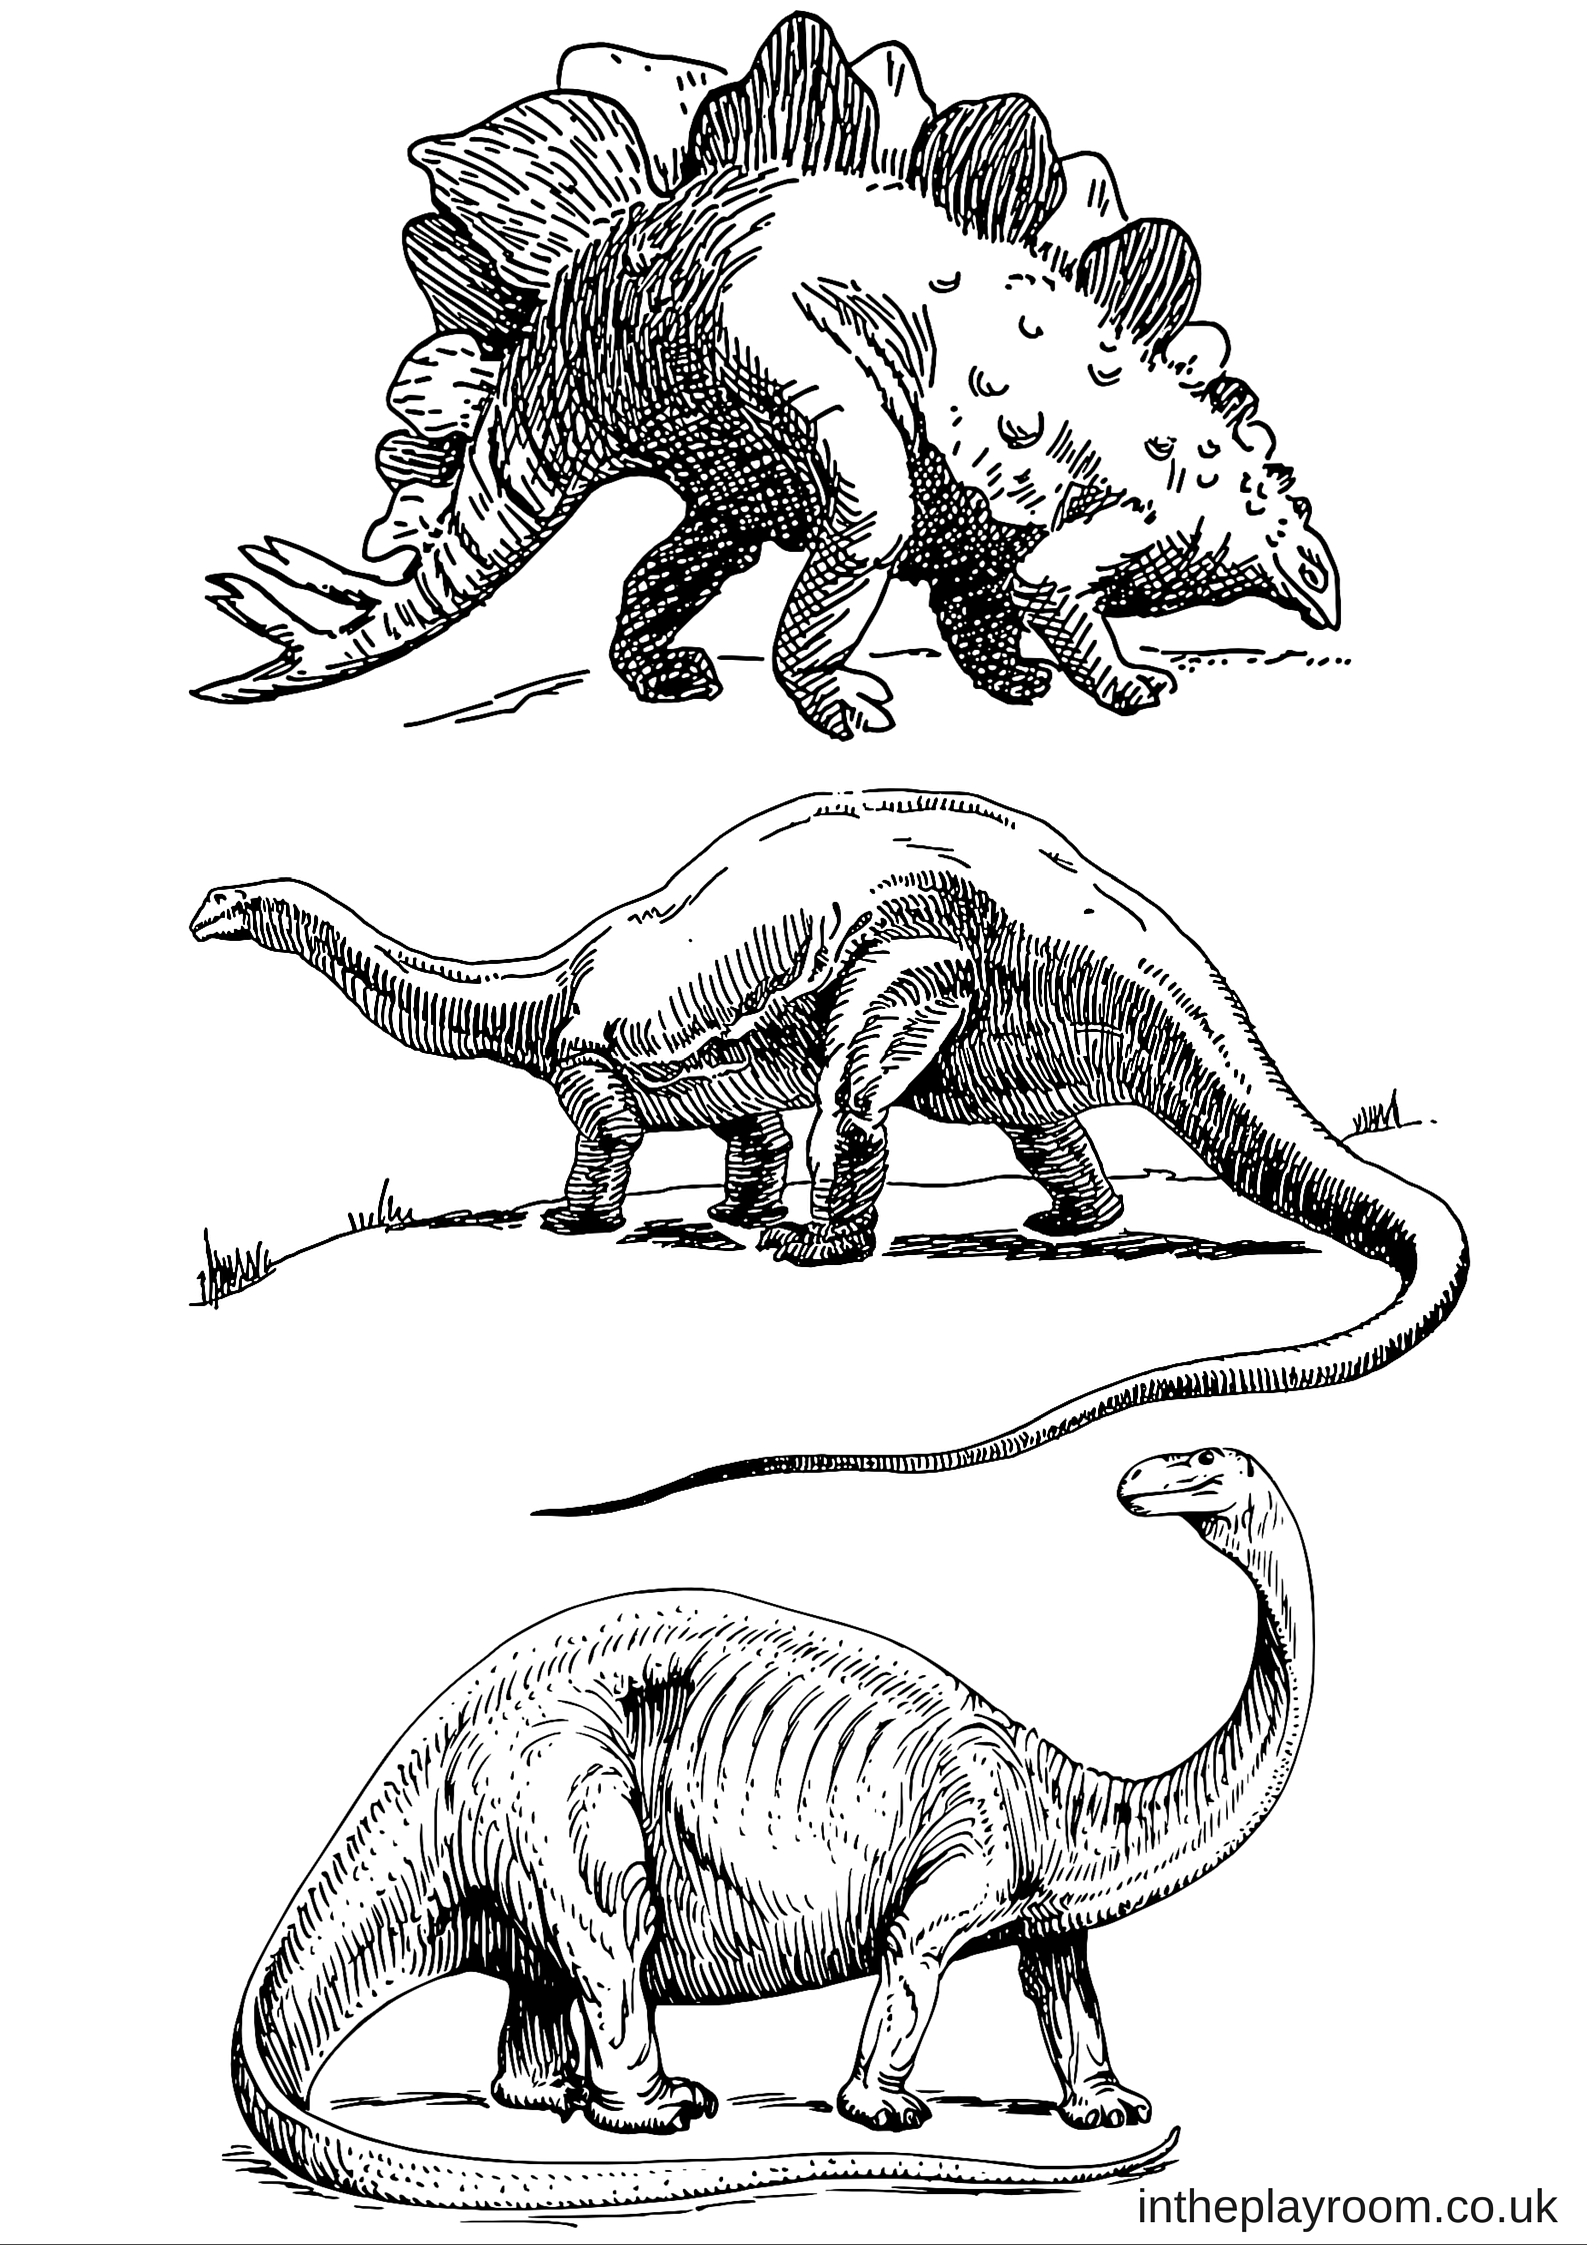 dinosaurs coloring pages printable dinosaurs coloring pages printable minister coloring dinosaurs coloring pages printable